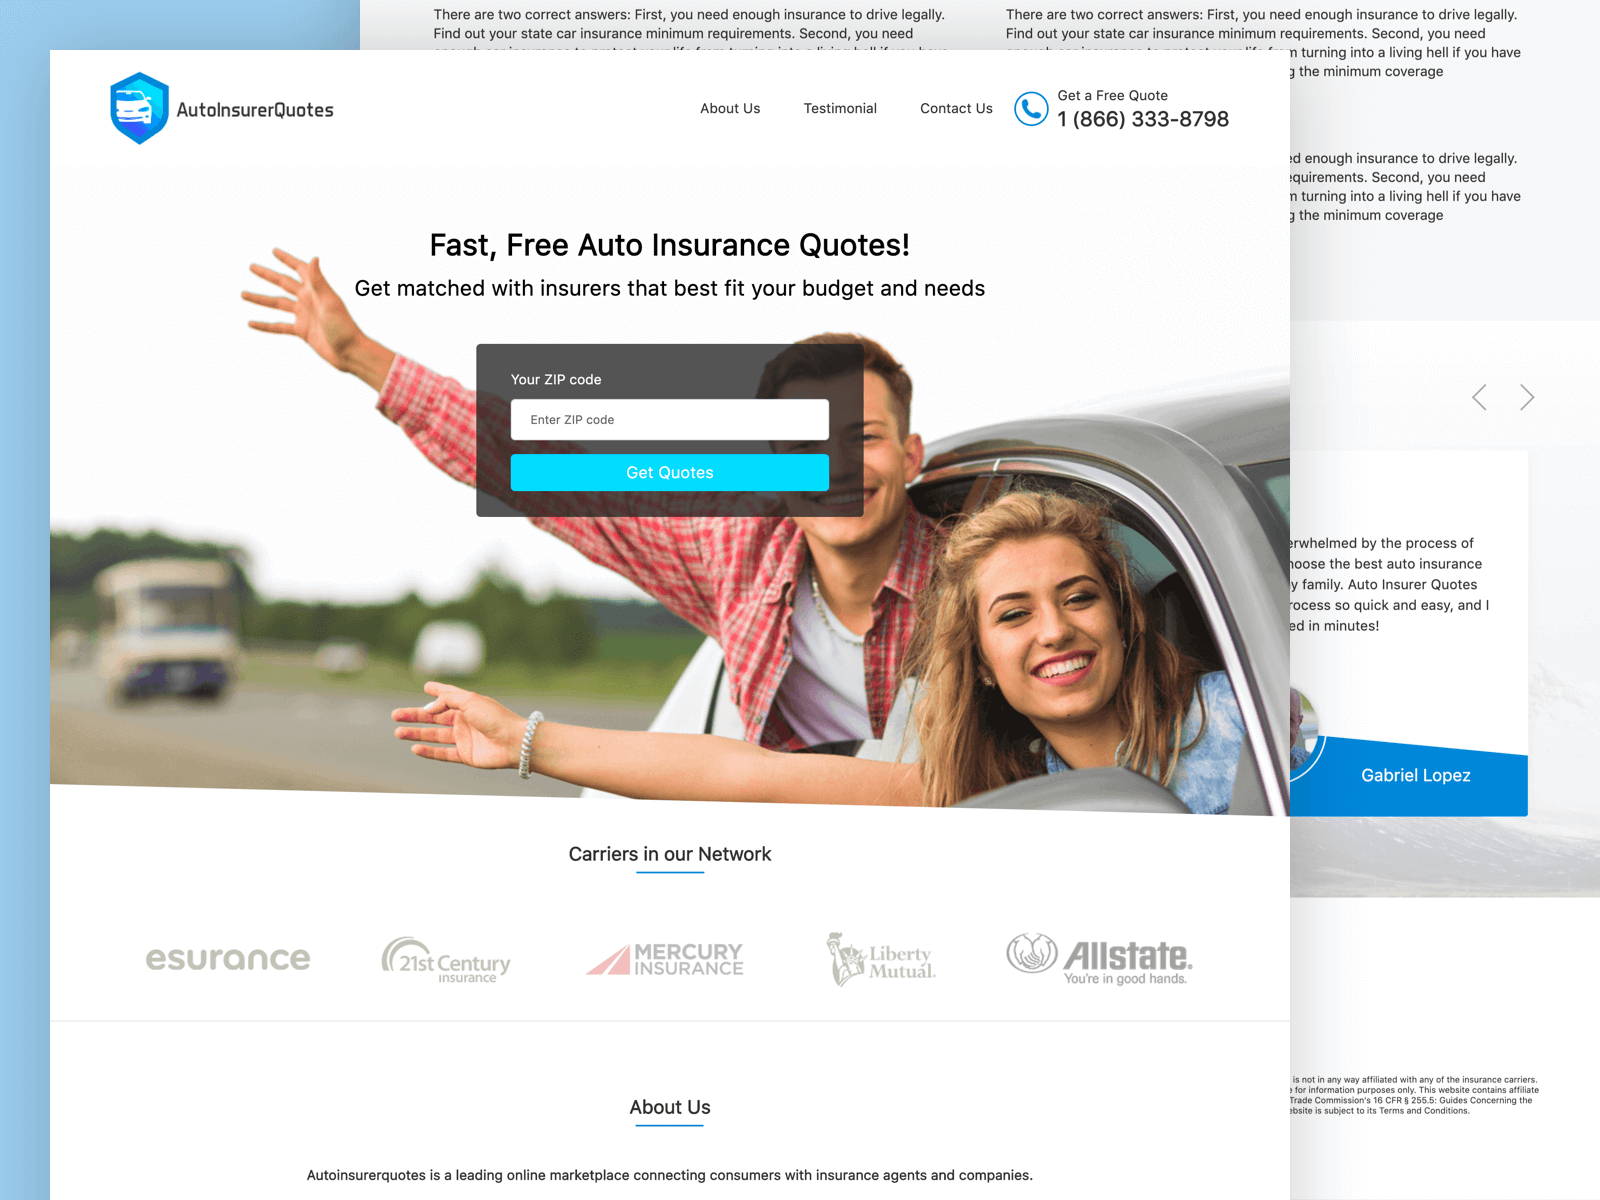 auto-insurer-website